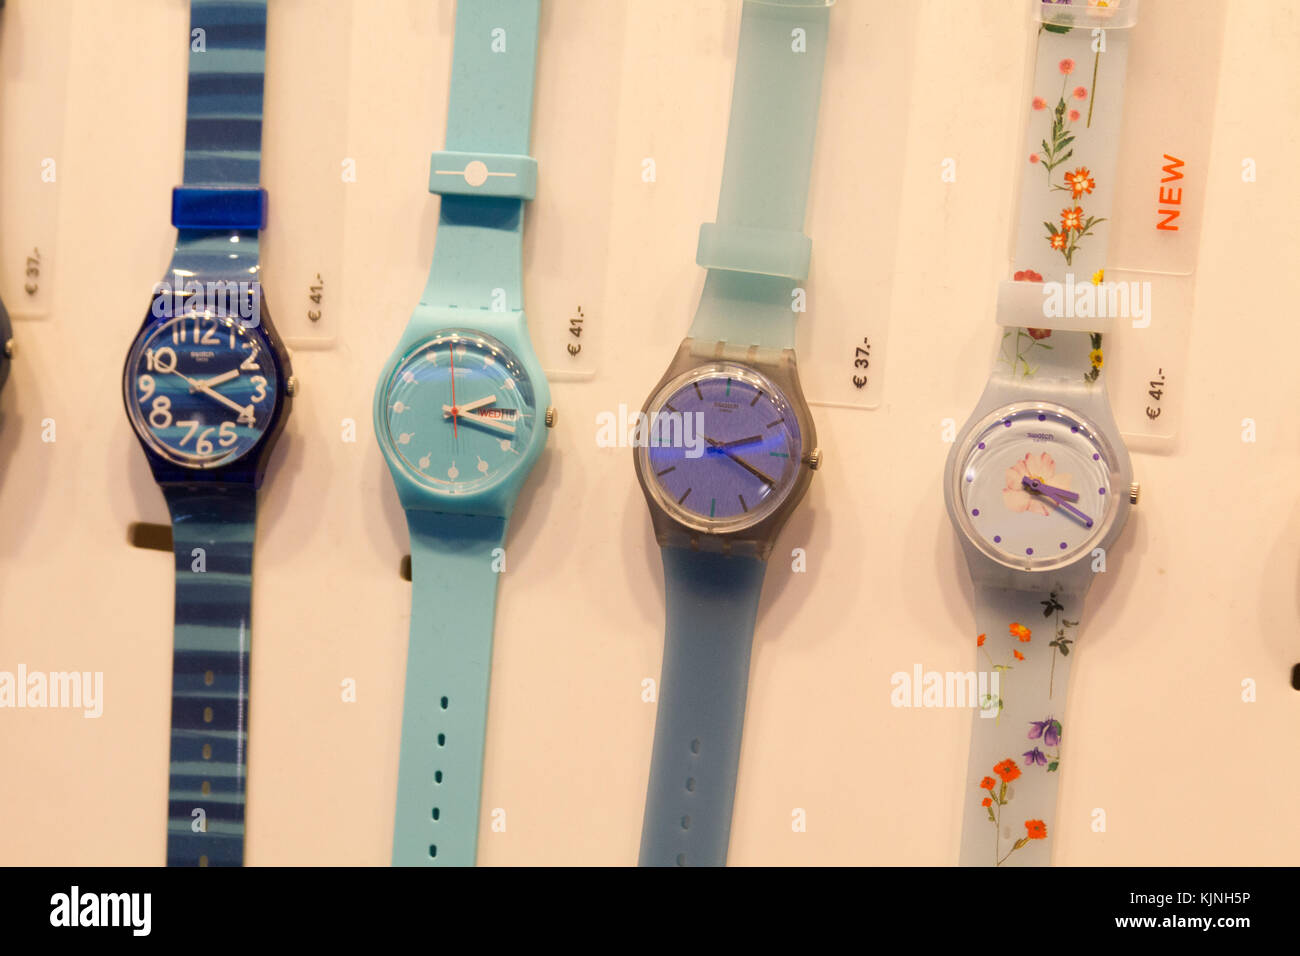 Swatch wristwatches arrayed in a shop. - Stock Image